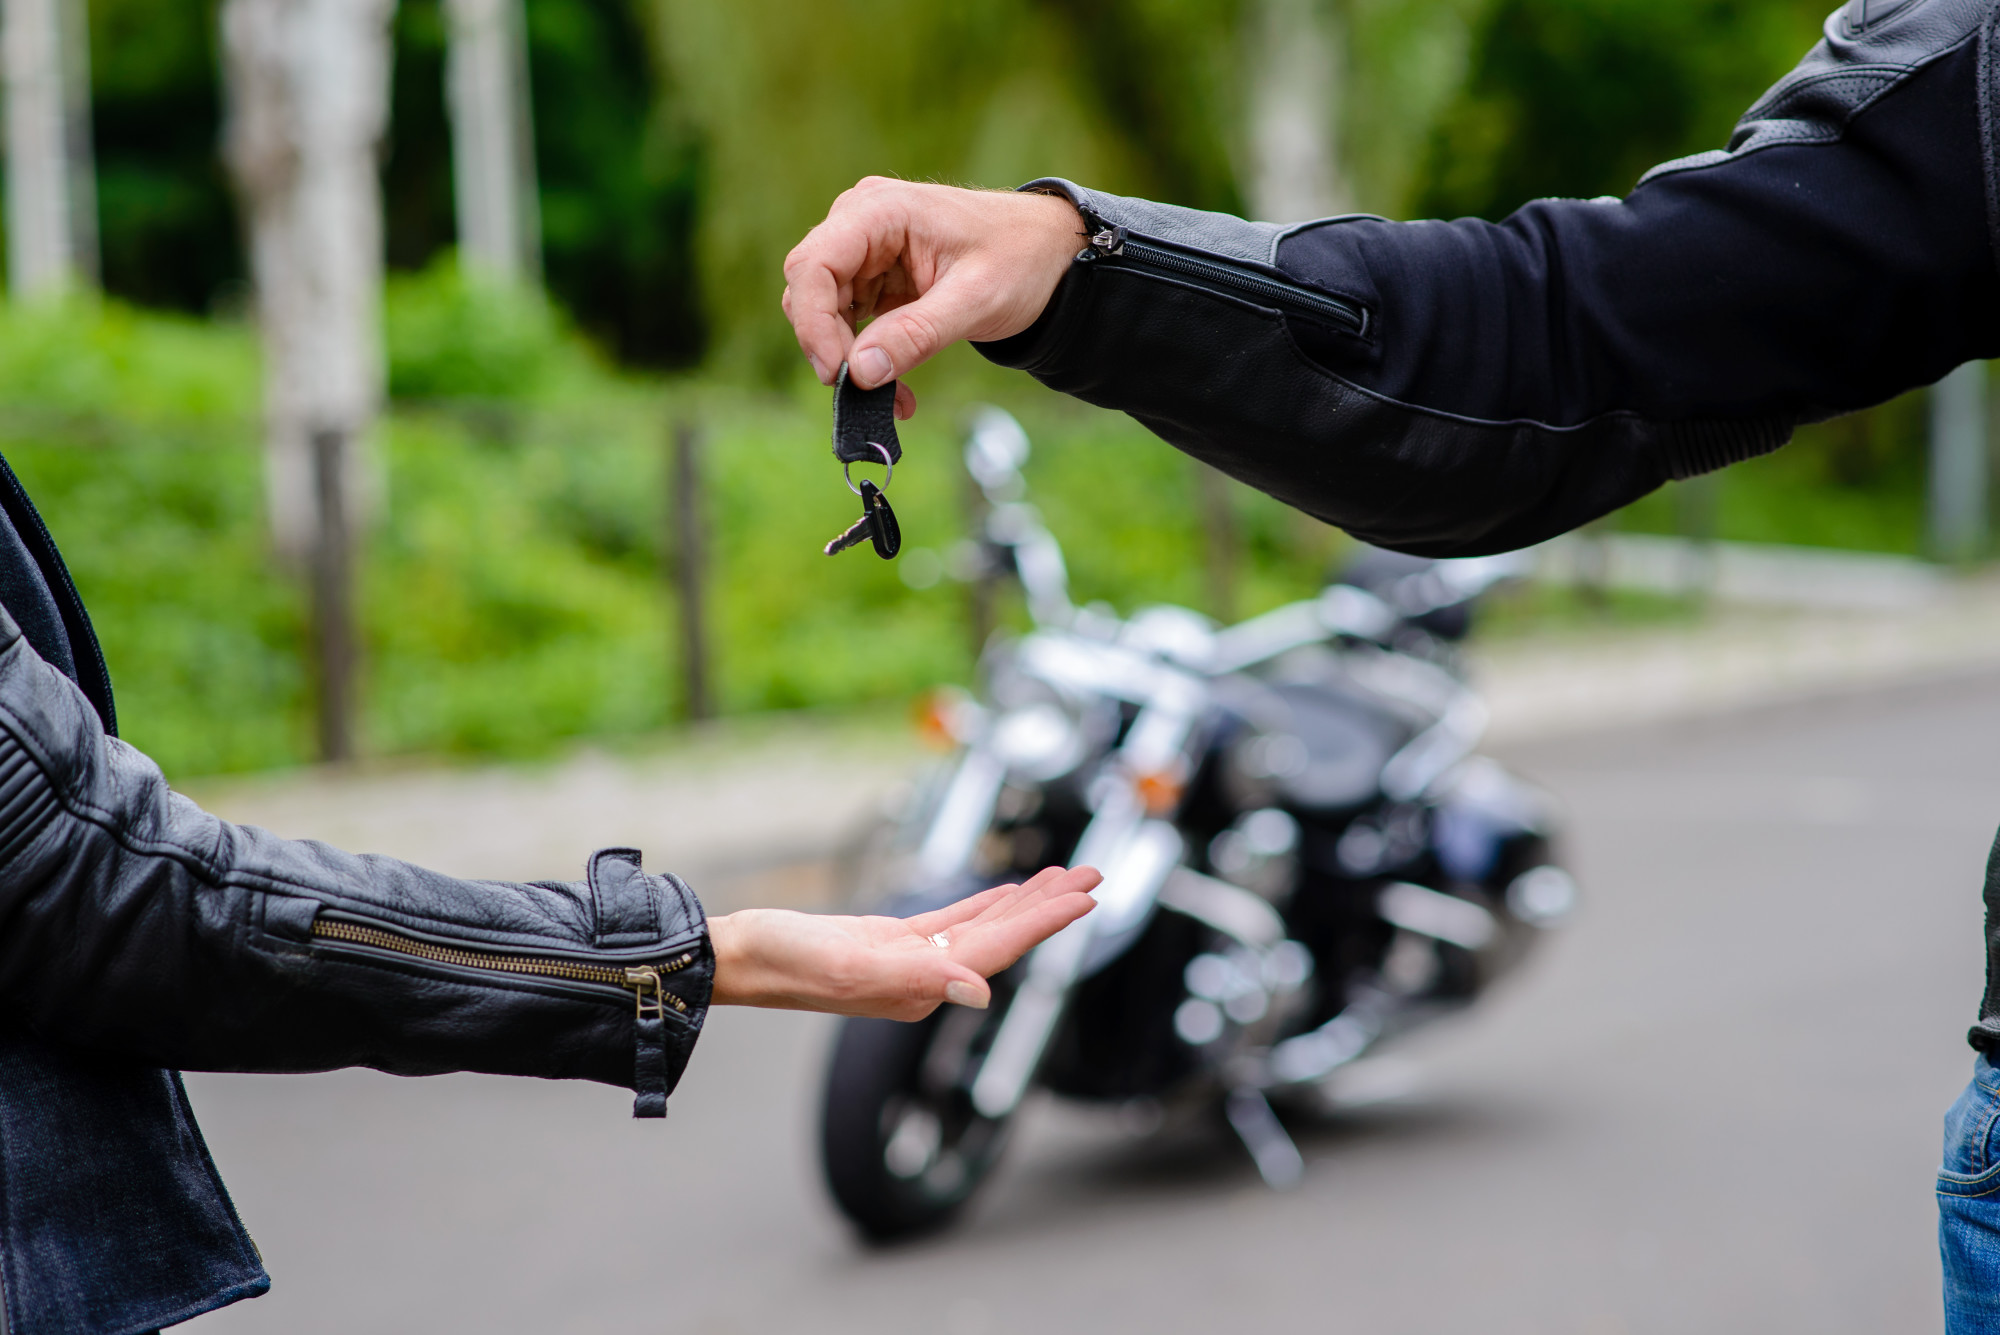 handing over motorcycle keys